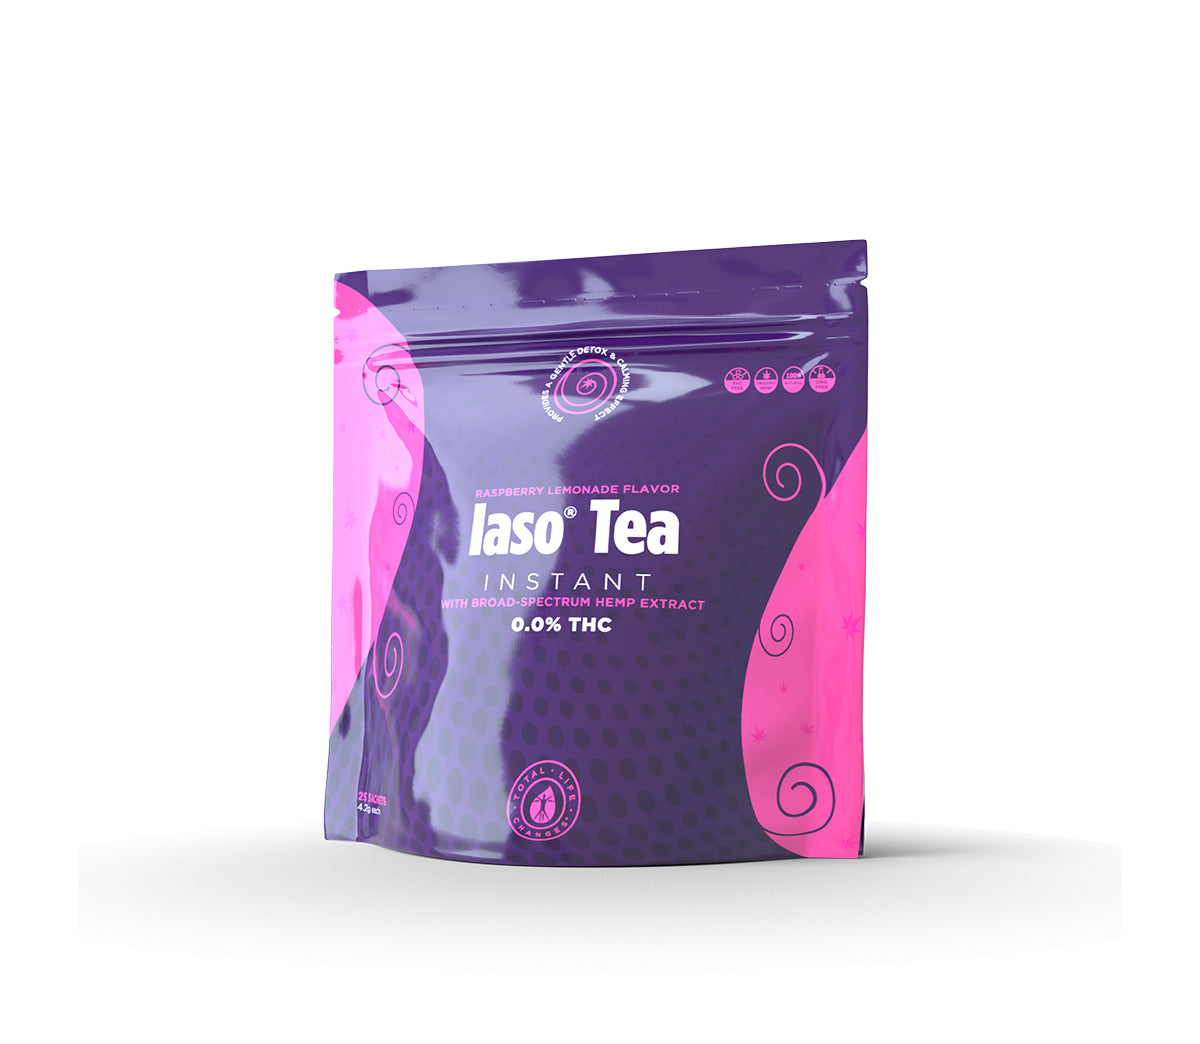 Iaso® Tea Instant with Broad-Spectrum Hemp Extract